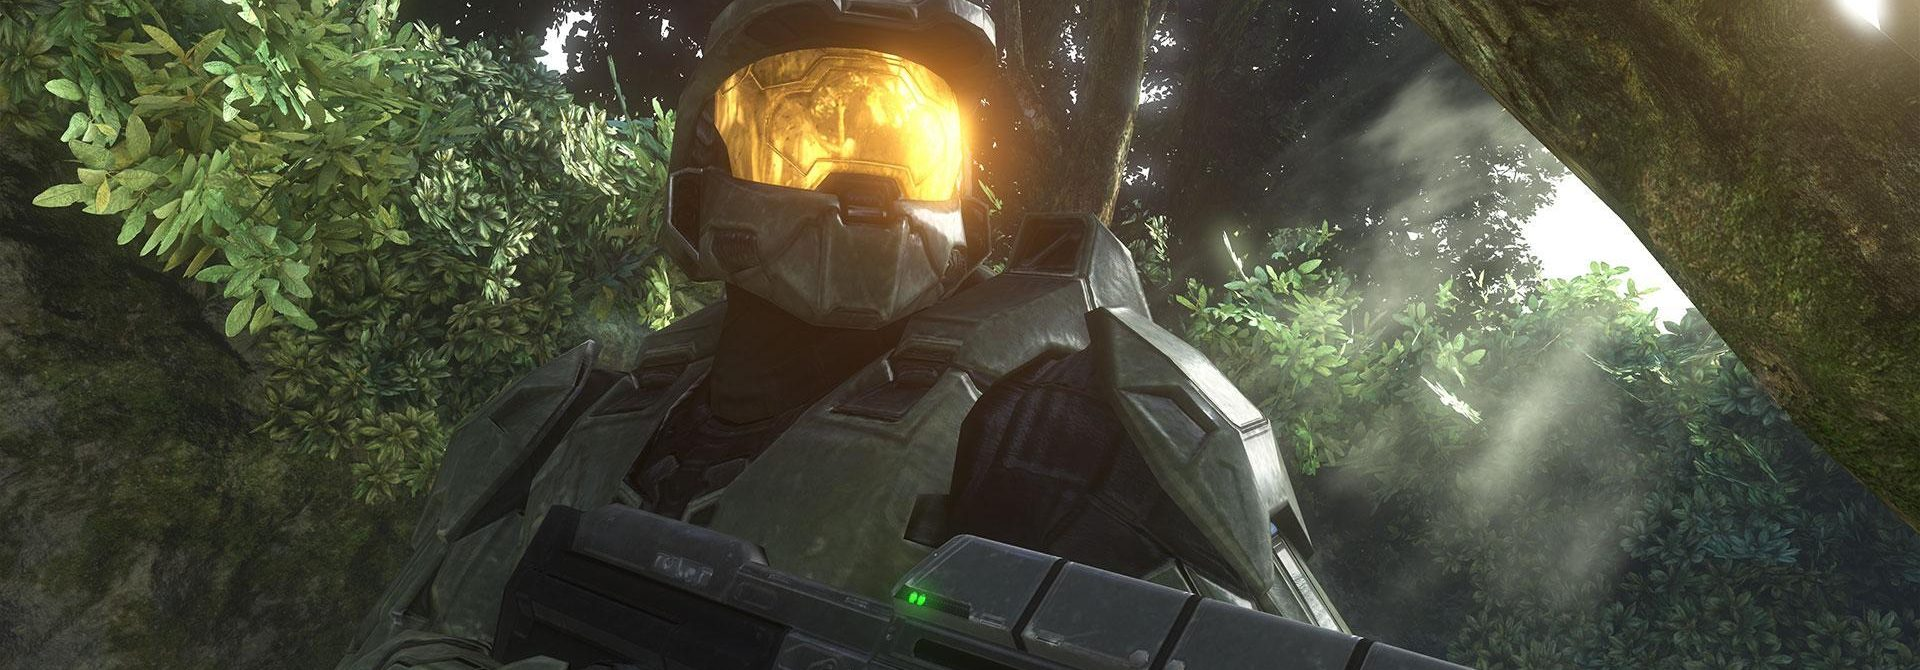 Xbox 360 Halo Games Are Now backwards Compatible On Xbox One